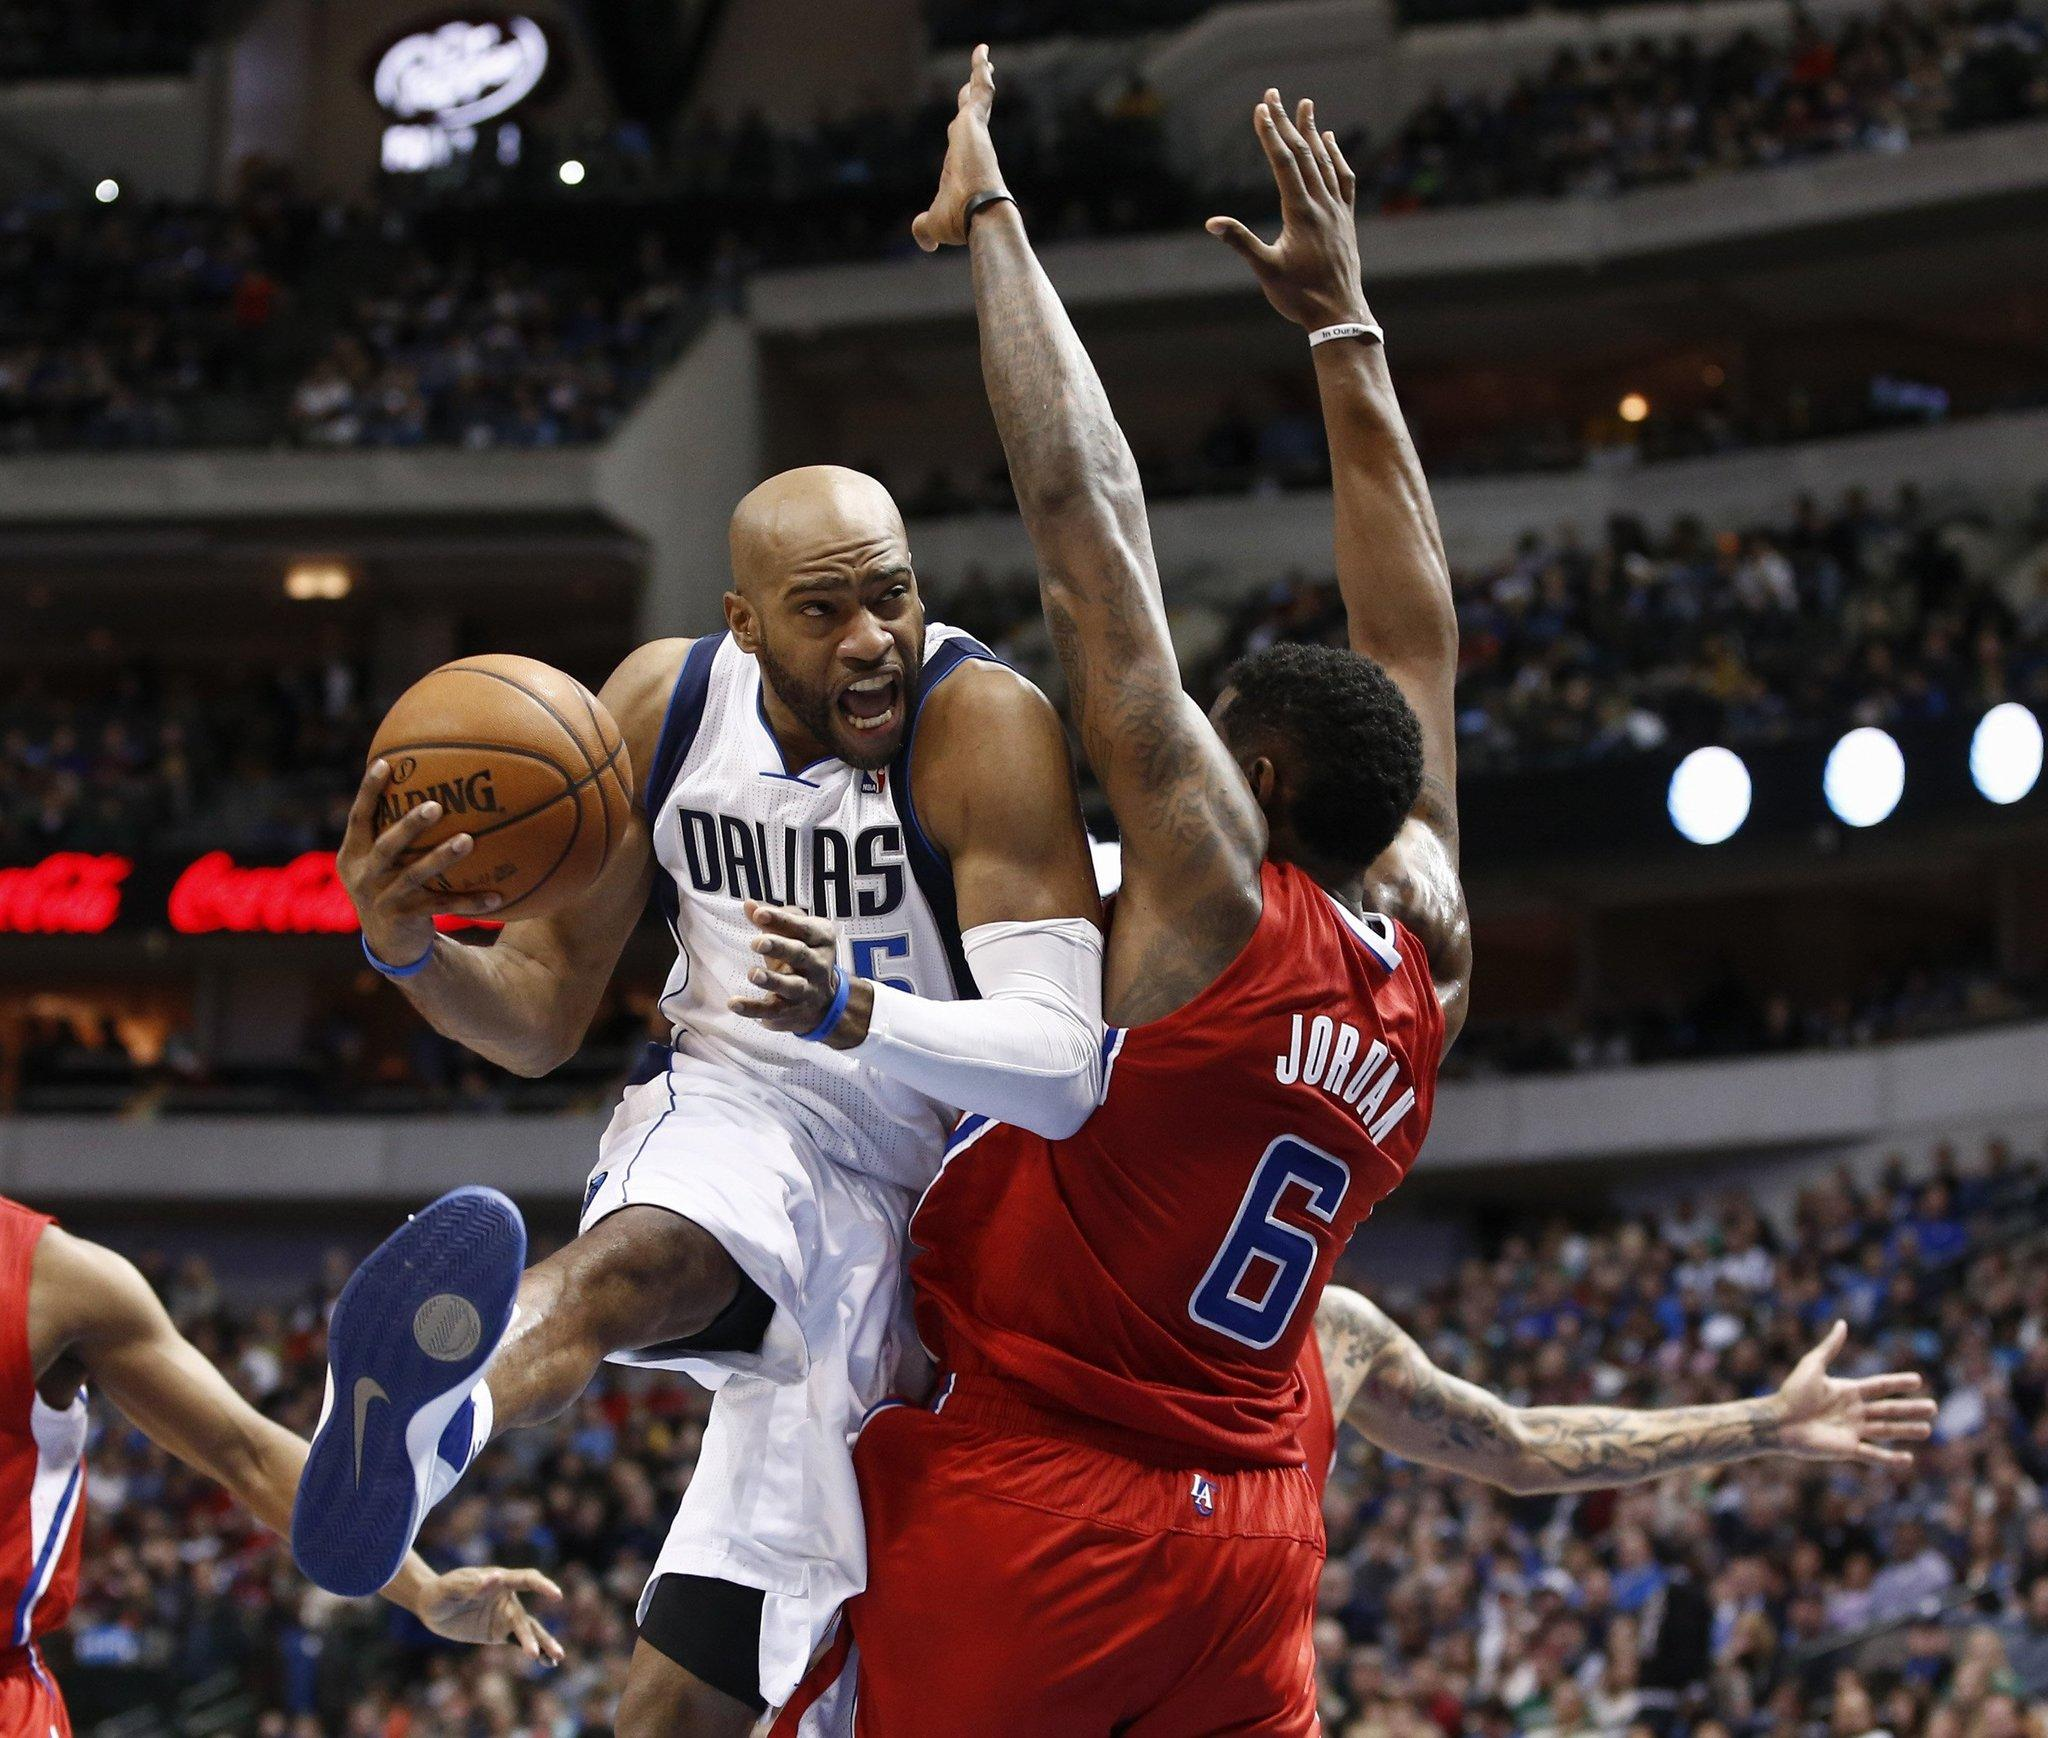 Vince Carter, who played for the Mavericks last season, is headed to Memphis to join the Grizzlies.